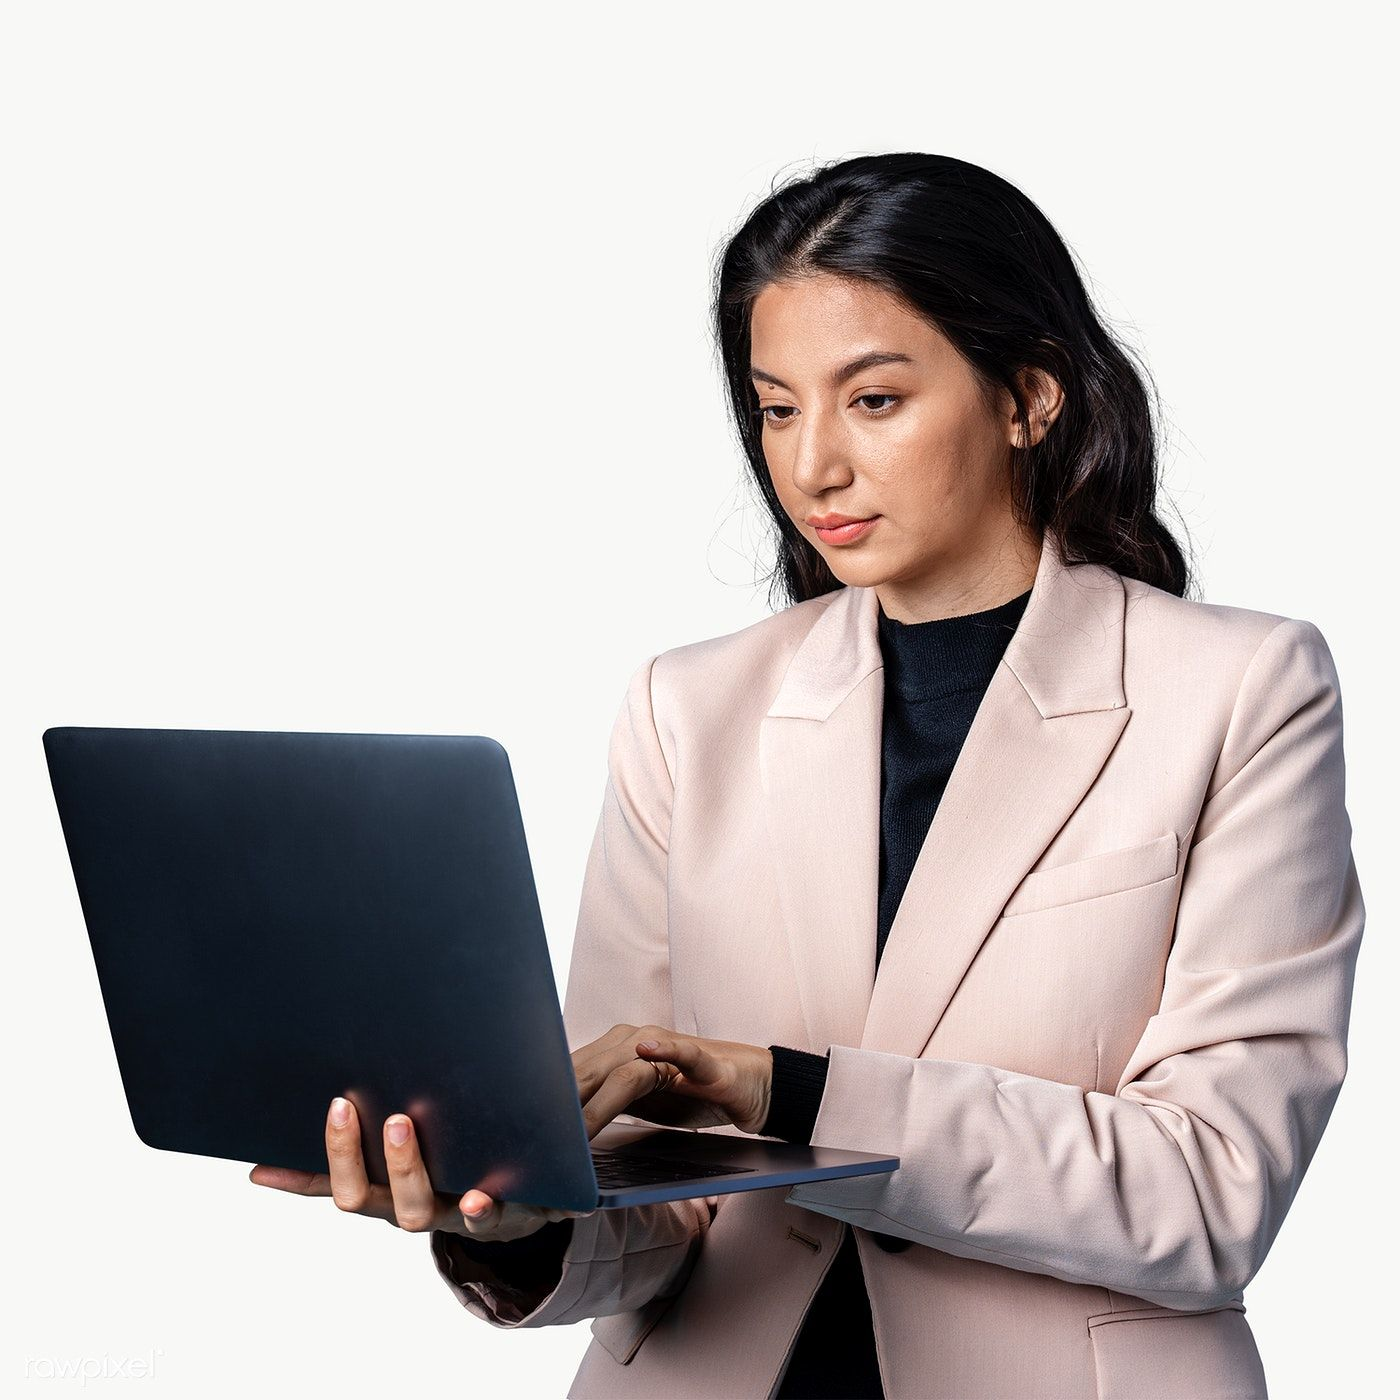 Businesswoman Using A Laptop Transparent Png Premium Image By Rawpixel Com Teddy Rawpixel